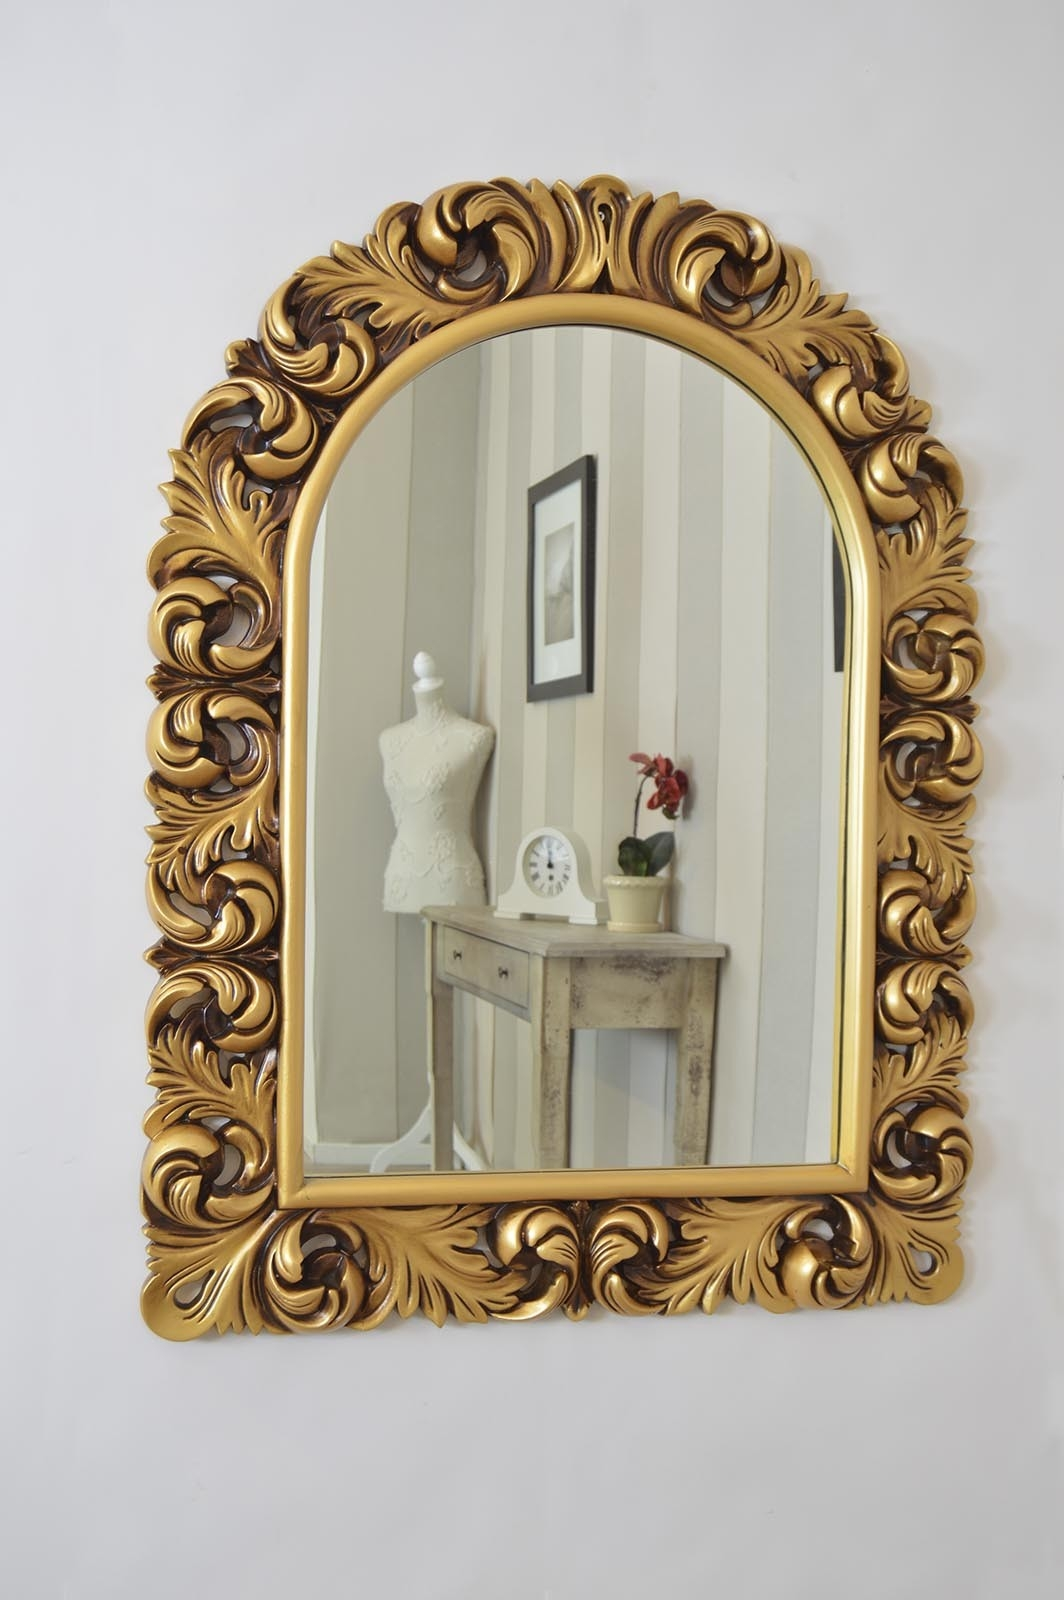 Large Detailed Antique Gold Arched Ornate New Wall Mirror 4ft X In Ornate Large Mirror (Image 7 of 15)